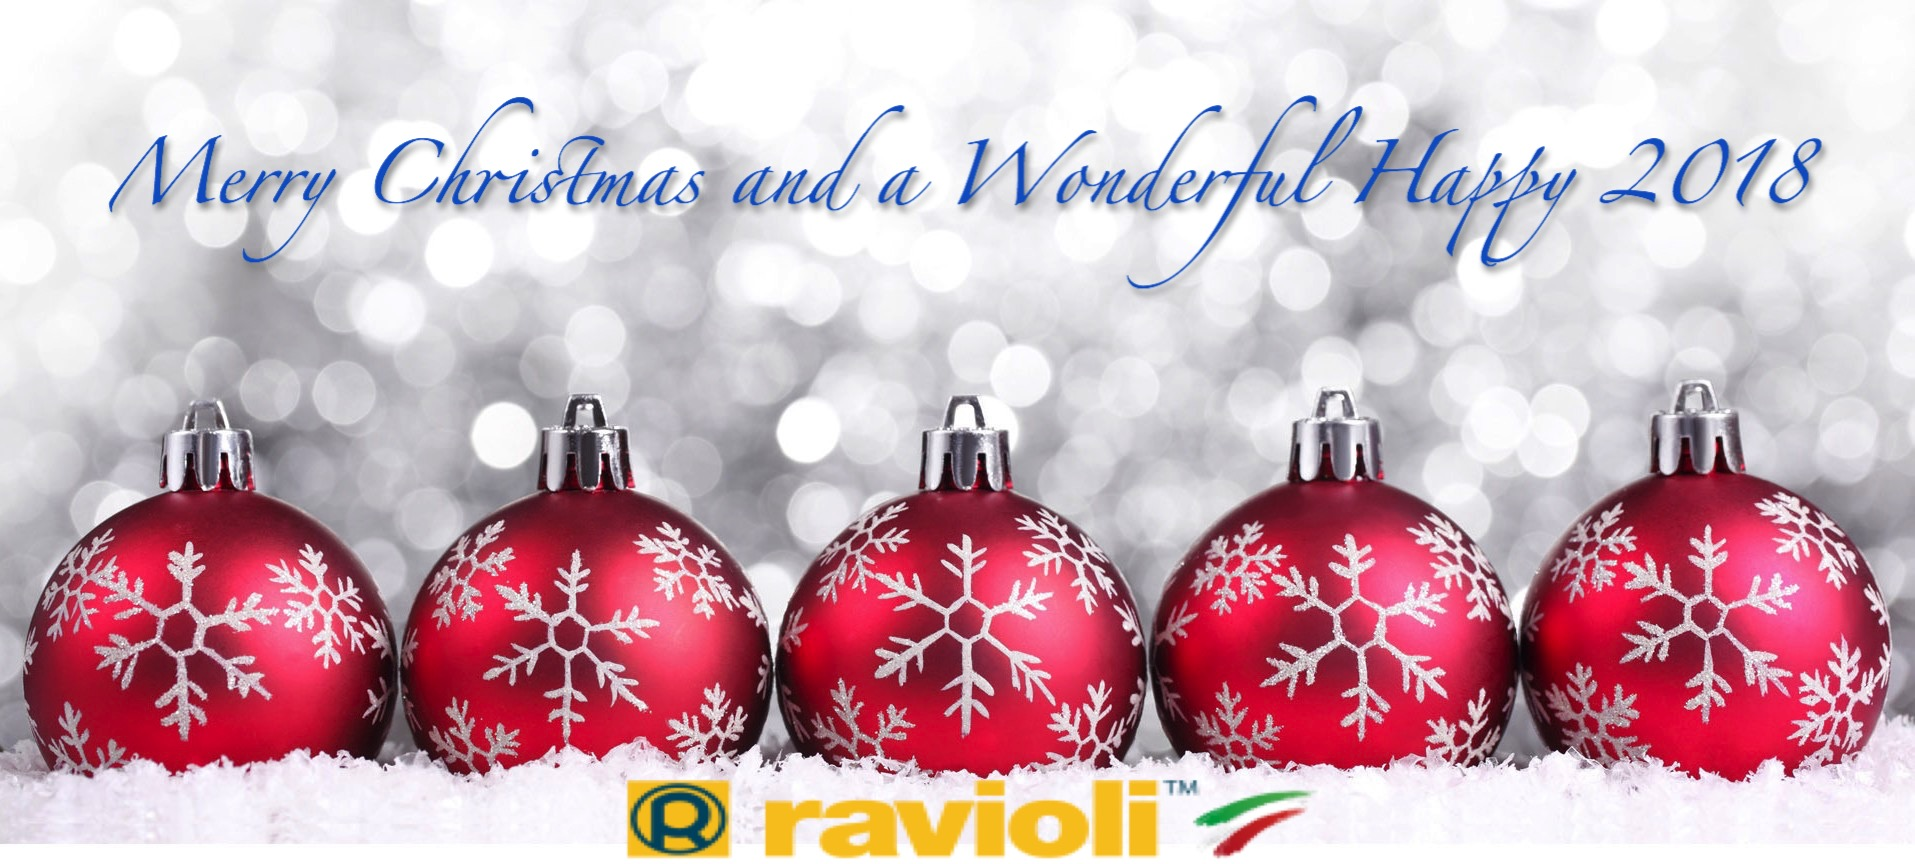 Merry christmas from ravioli spa ravioli spa we thank you for your kind attention and wish you once more our best seasons greetings for a merry christmas and a wonderful happy new year m4hsunfo